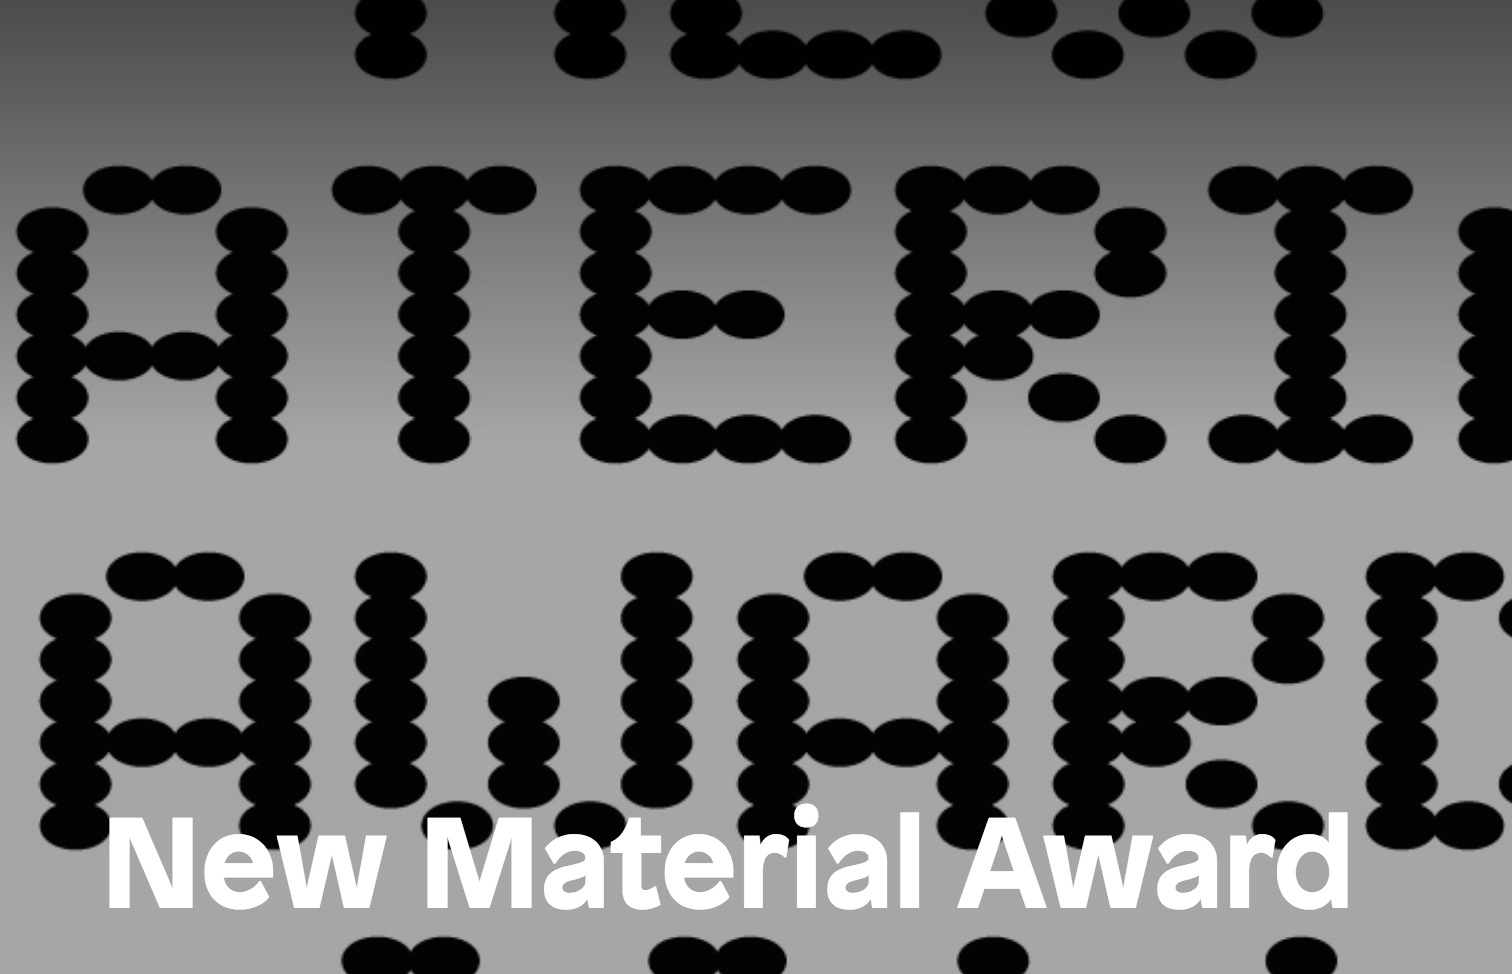 New Material Award Application:  Atelier NL, a design studio in Eindhoven, applied for the 2014 New Material Award, which is only available to Dutch designers. I wrote the text, which the studio then formatted into a formal document including images of work relevant to their Sandglass project.